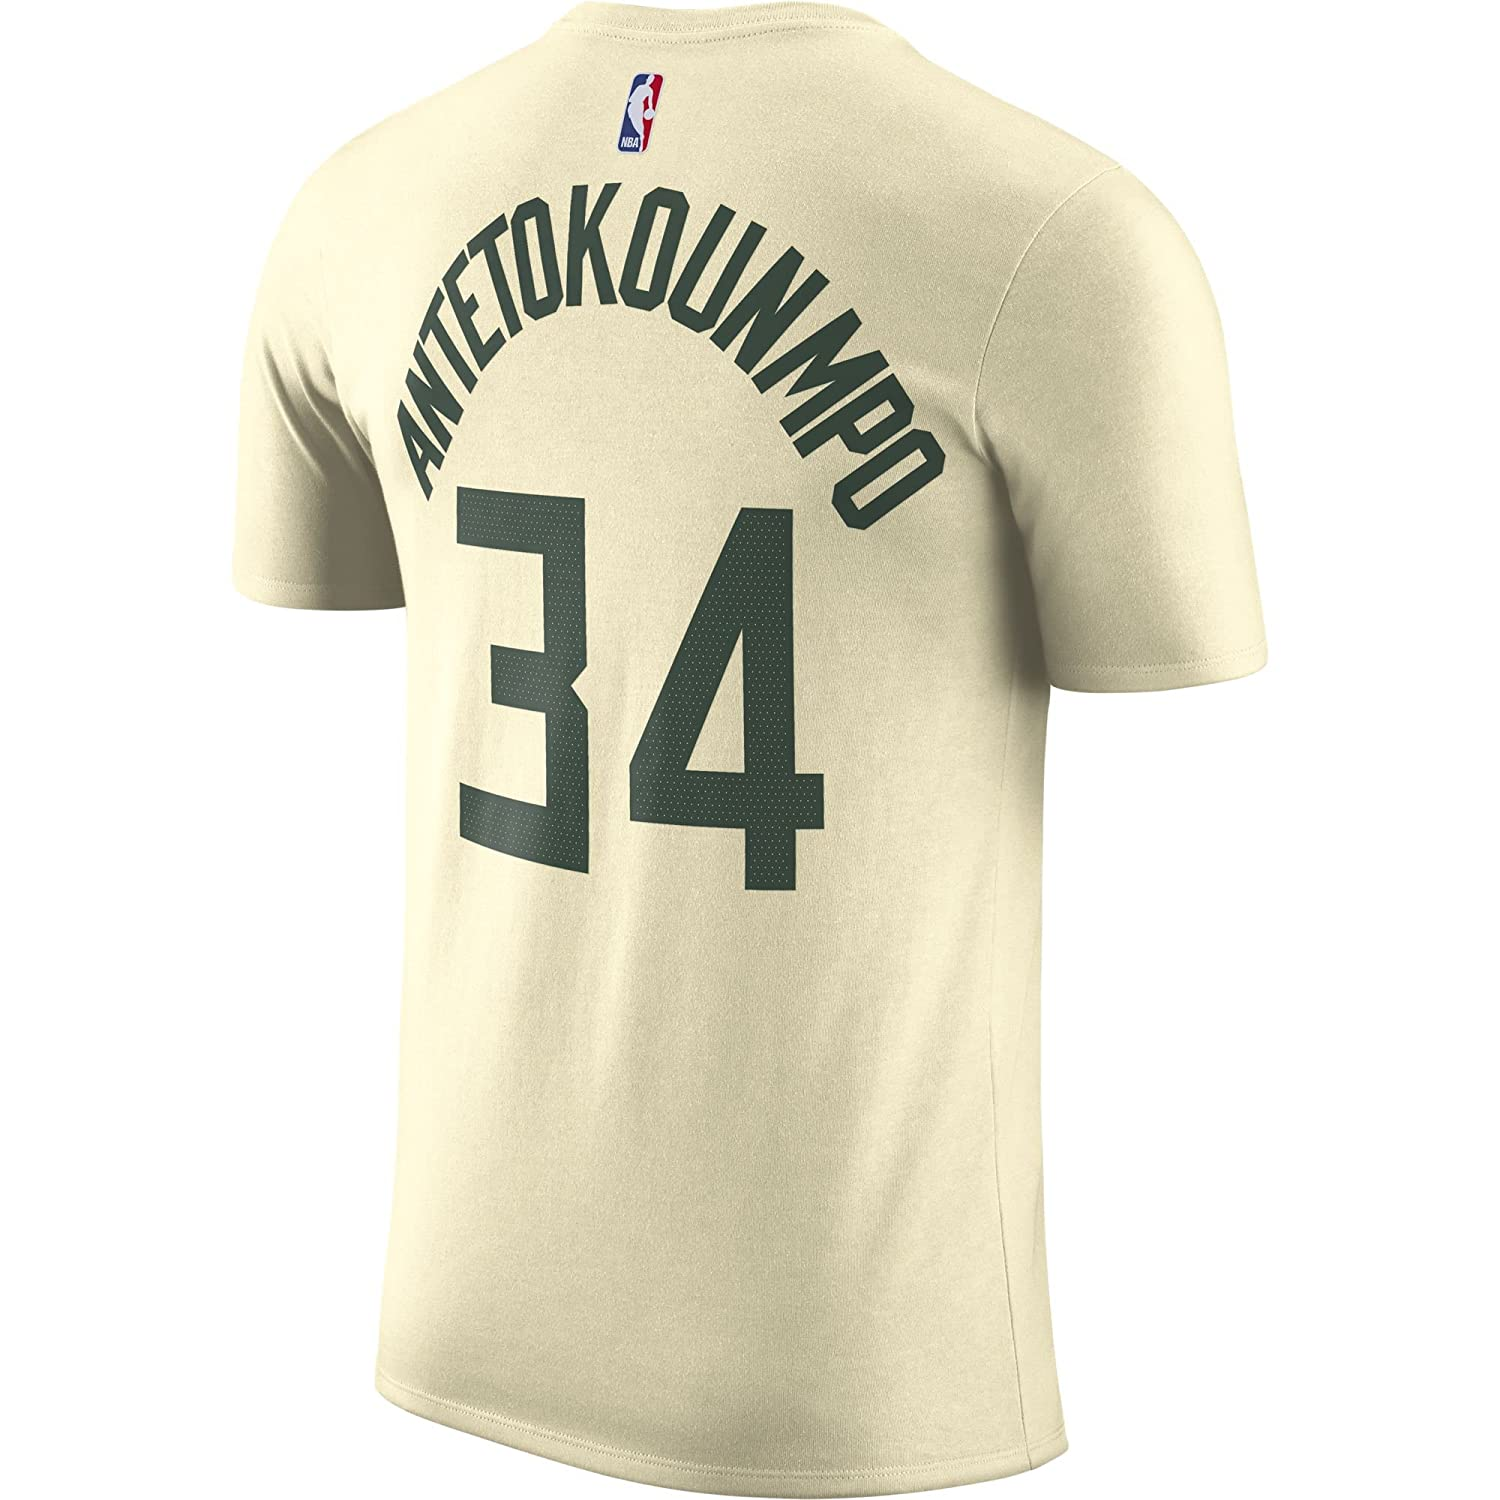 Nike NBA Milwaukee Bucks Giannis Antetokounmpo 34 2017 2018 City Edition Name & Number Official, Camiseta de Hombre: Amazon.es: Ropa y accesorios